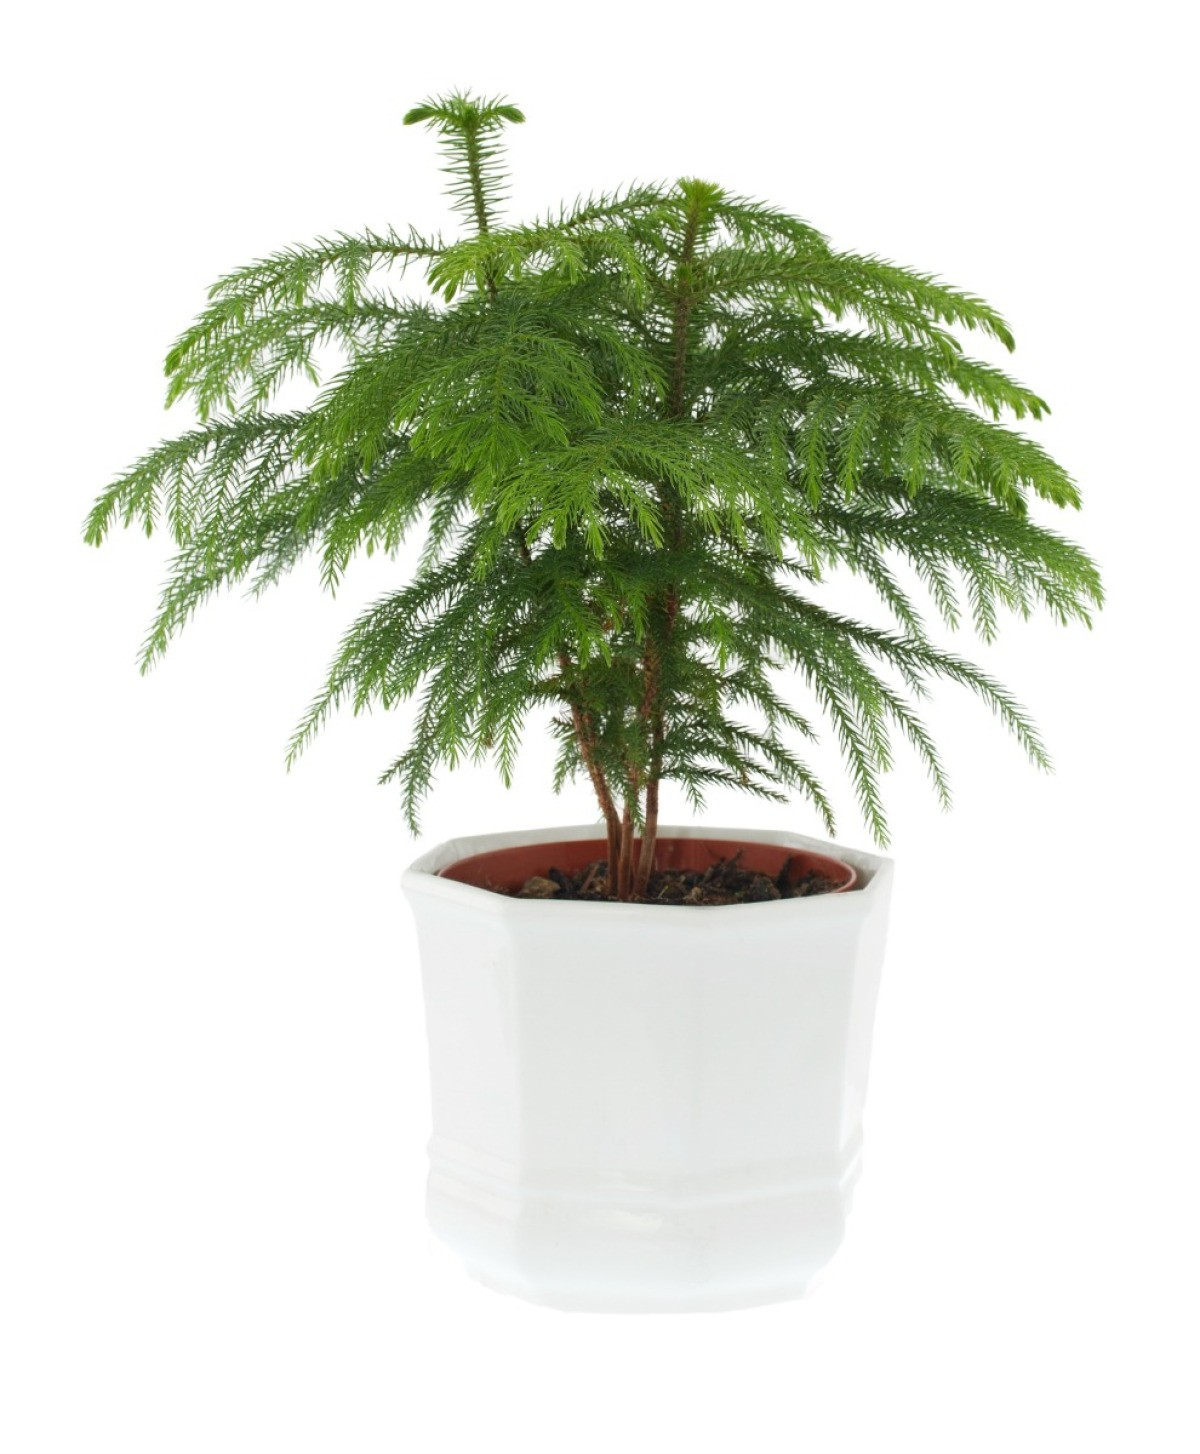 Caring for a Norfolk Pine   ThriftyFun on norfolk pine plant, norfolk pine growth rate, norfolk pine care, norfolk pine watering,